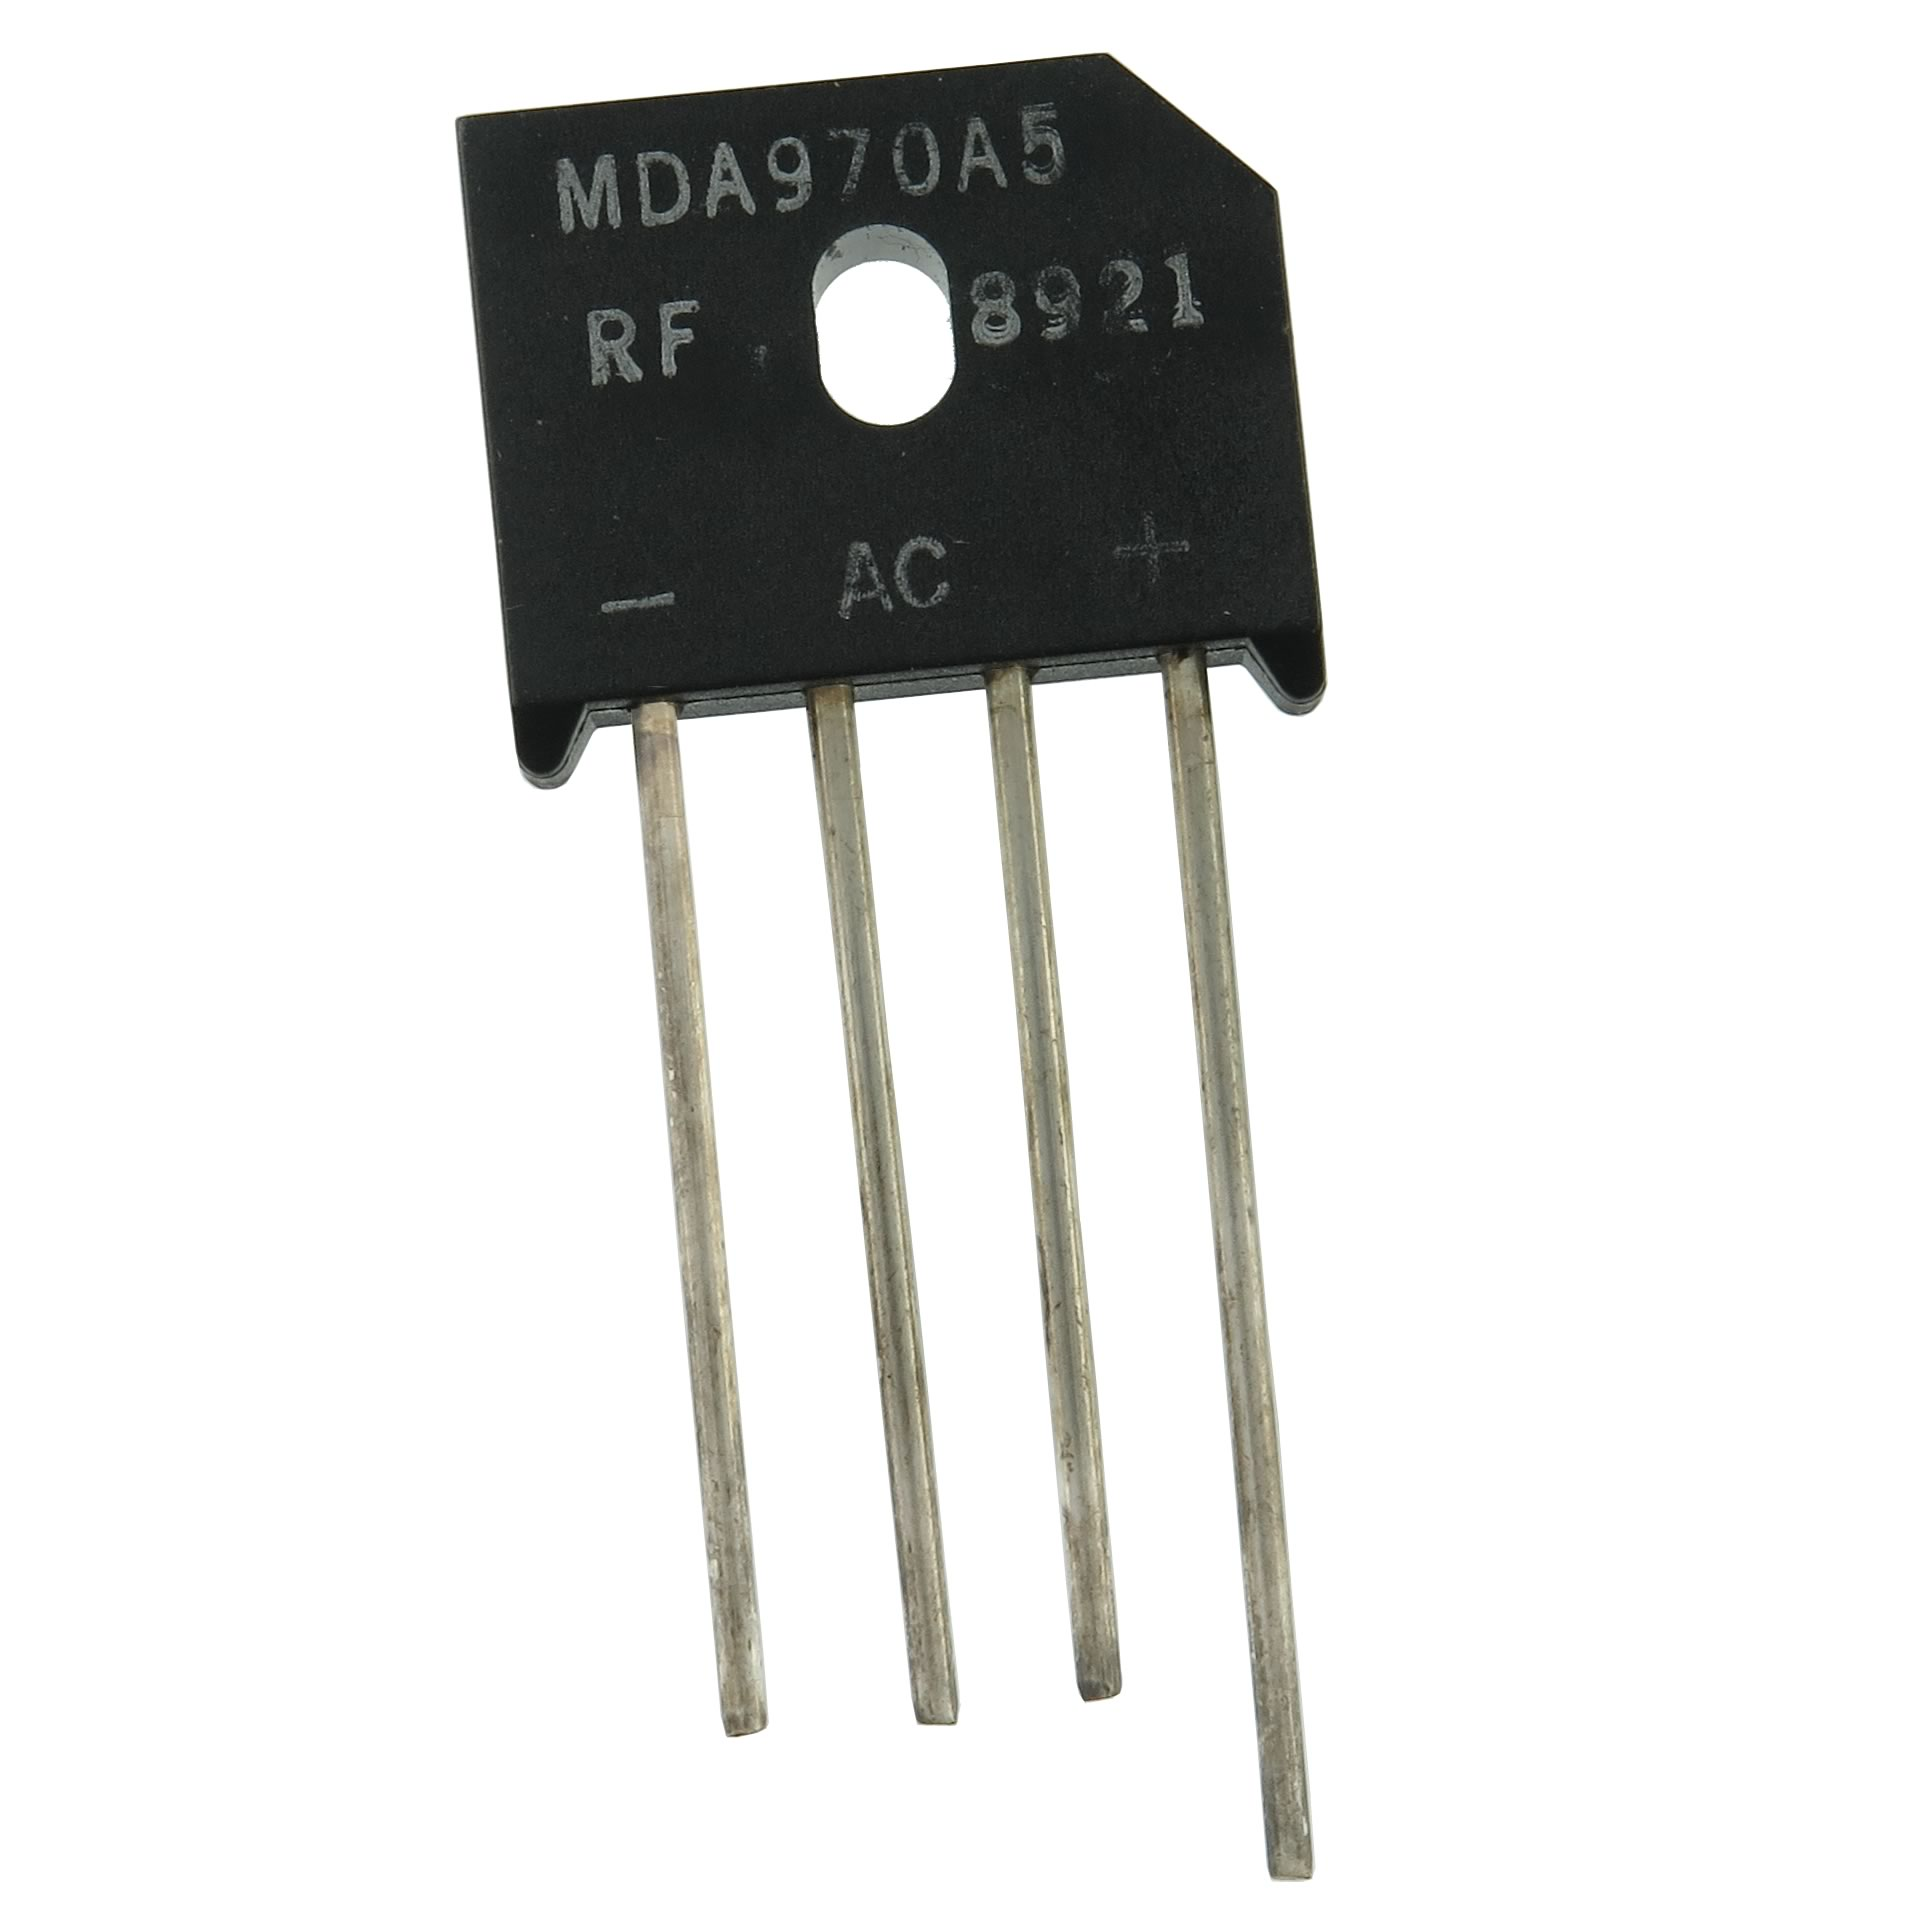 MDA970A5 400V 4Amp Bridge Rectifier